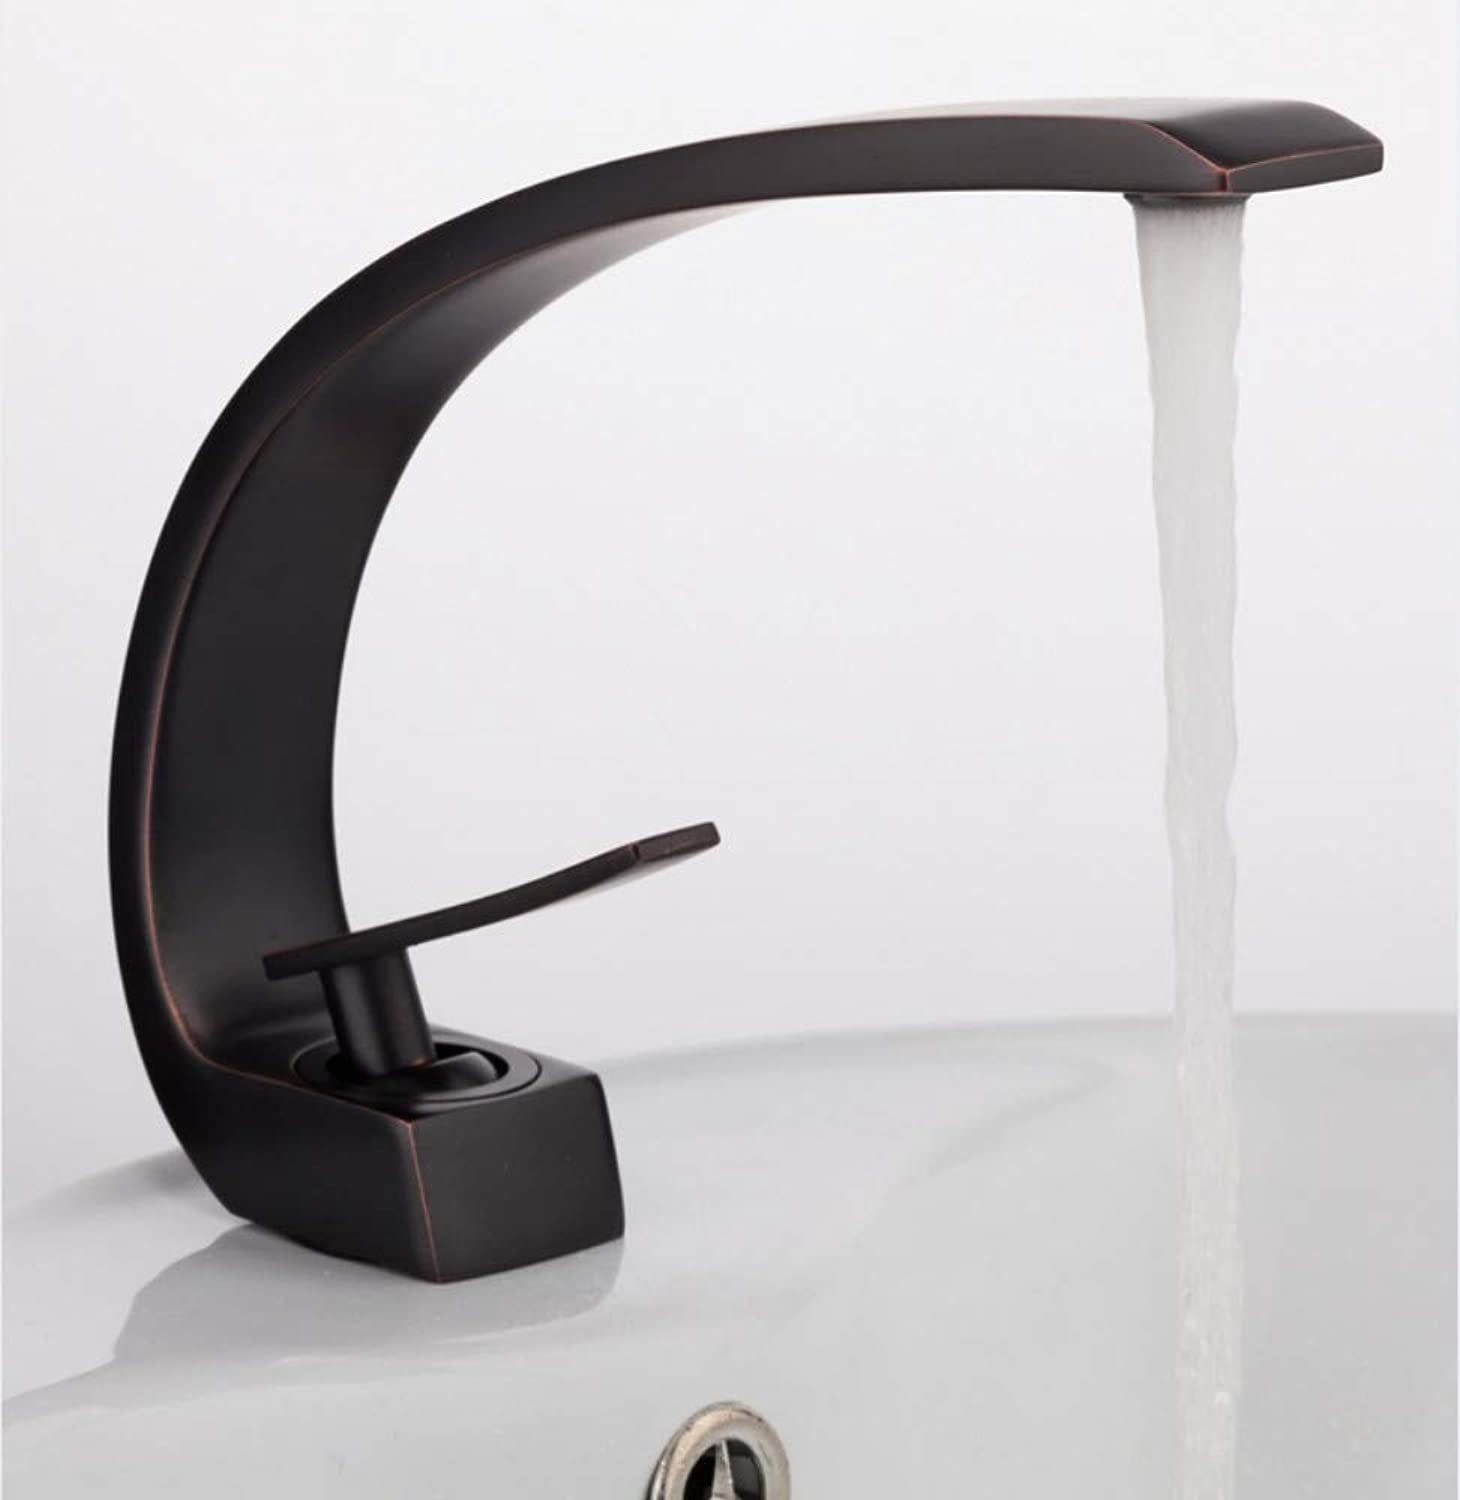 Basin Faucet New Innovative Black Brass Bathroom Faucet Cold and Hot Water Mixer Taps Antique Bath Sink Taps Mixer